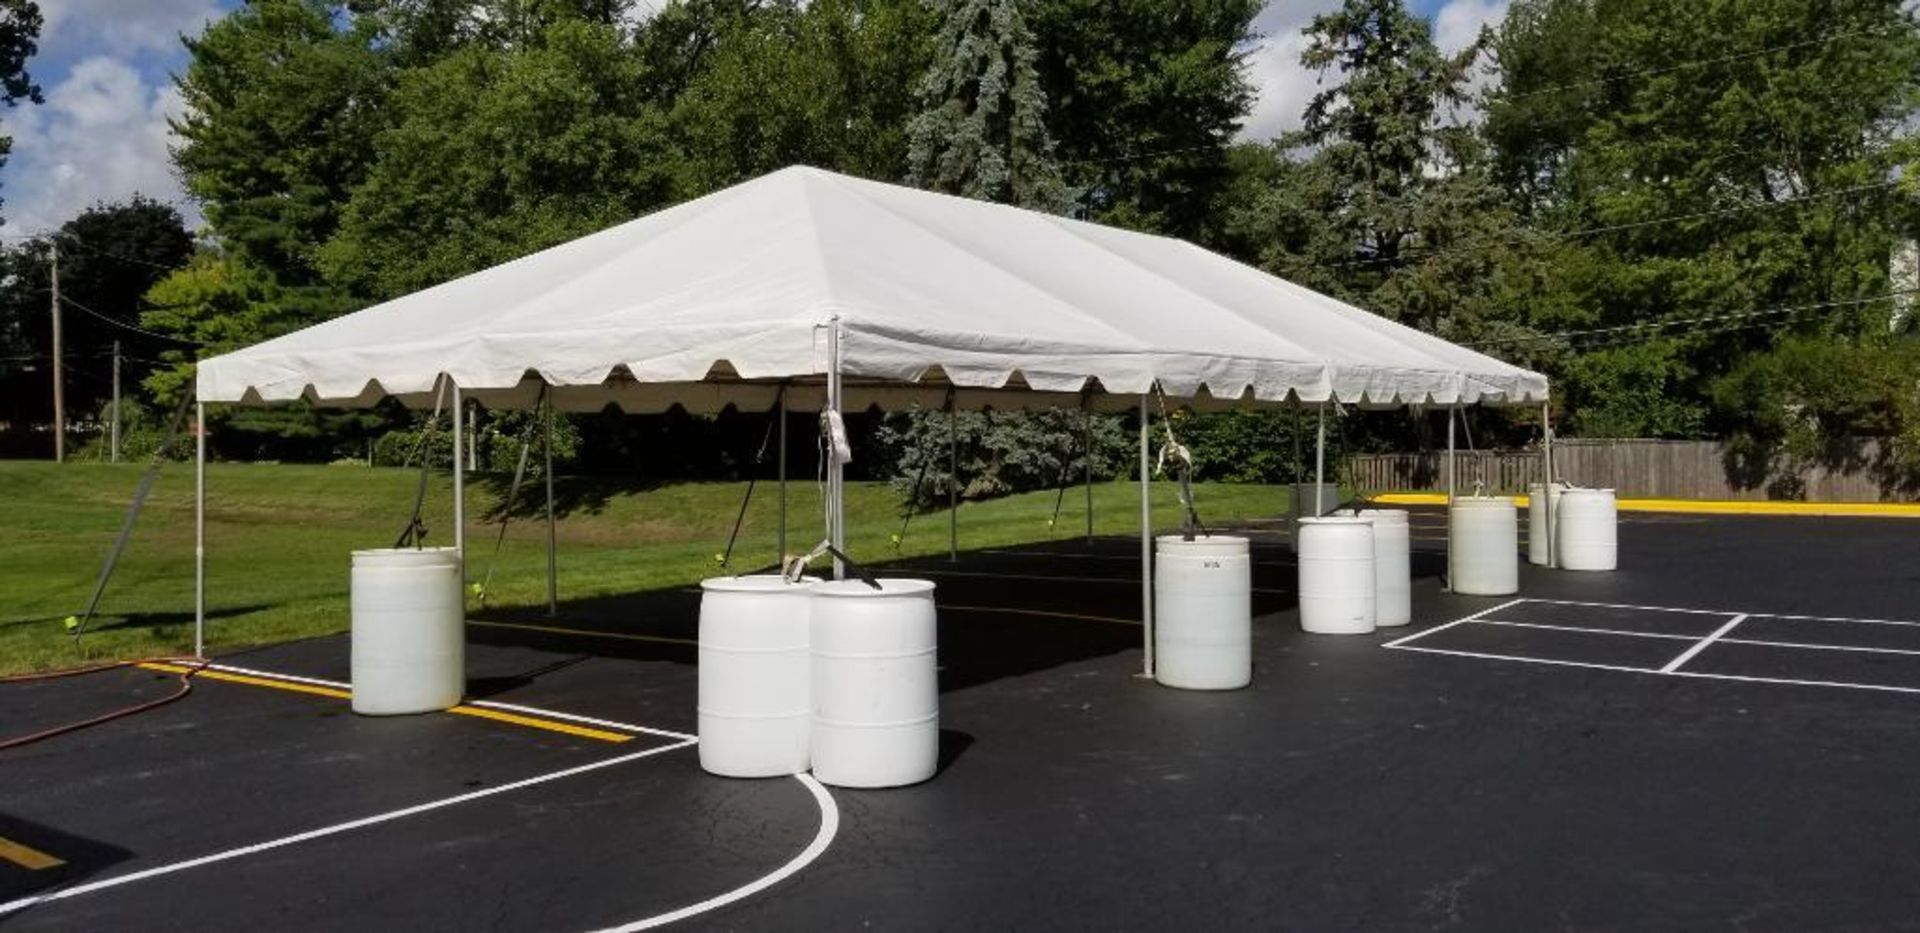 Lot 28 - 20 ft. x 40 ft. Frame Tent - Complete (sidewalls available)